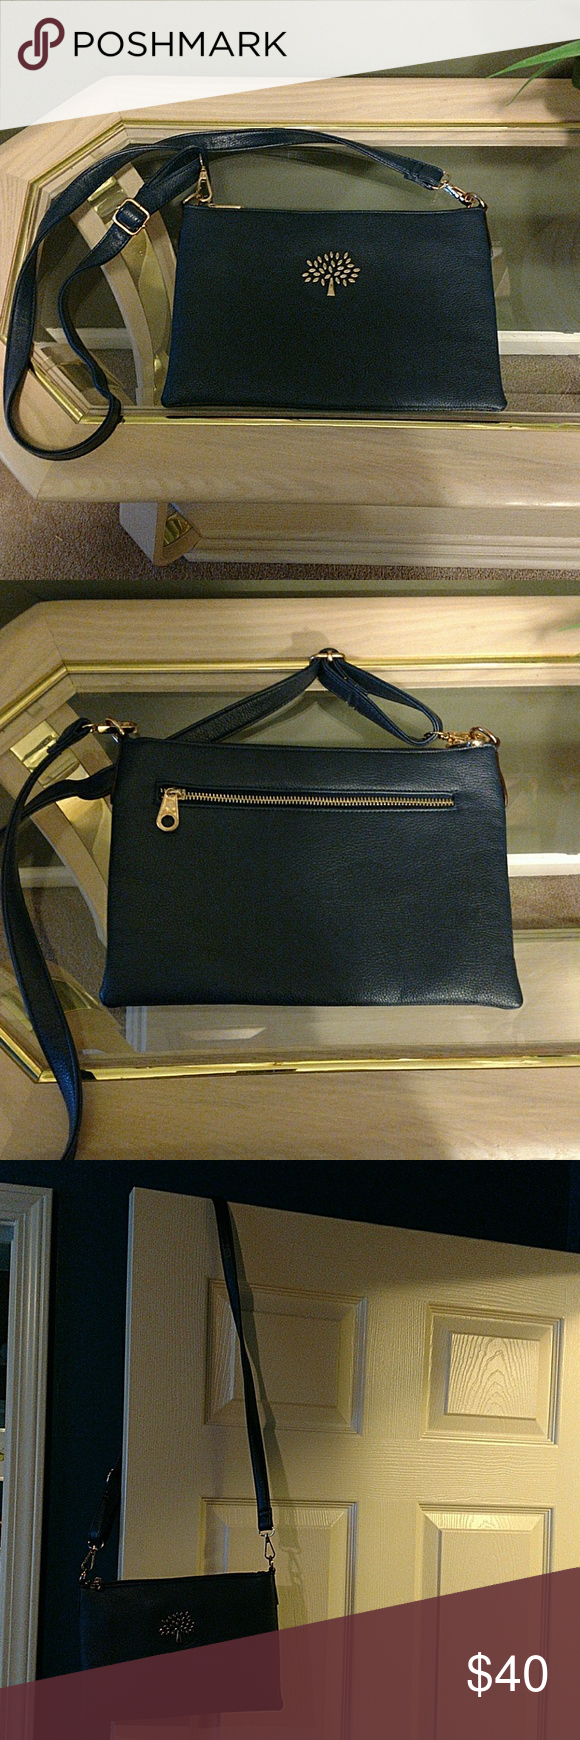 b7f30e4097 MULBERRY NAVY BLUE CROSSBODY BAG Mulberry Navy Blue Crossbody Bag. The  hardware is gold and